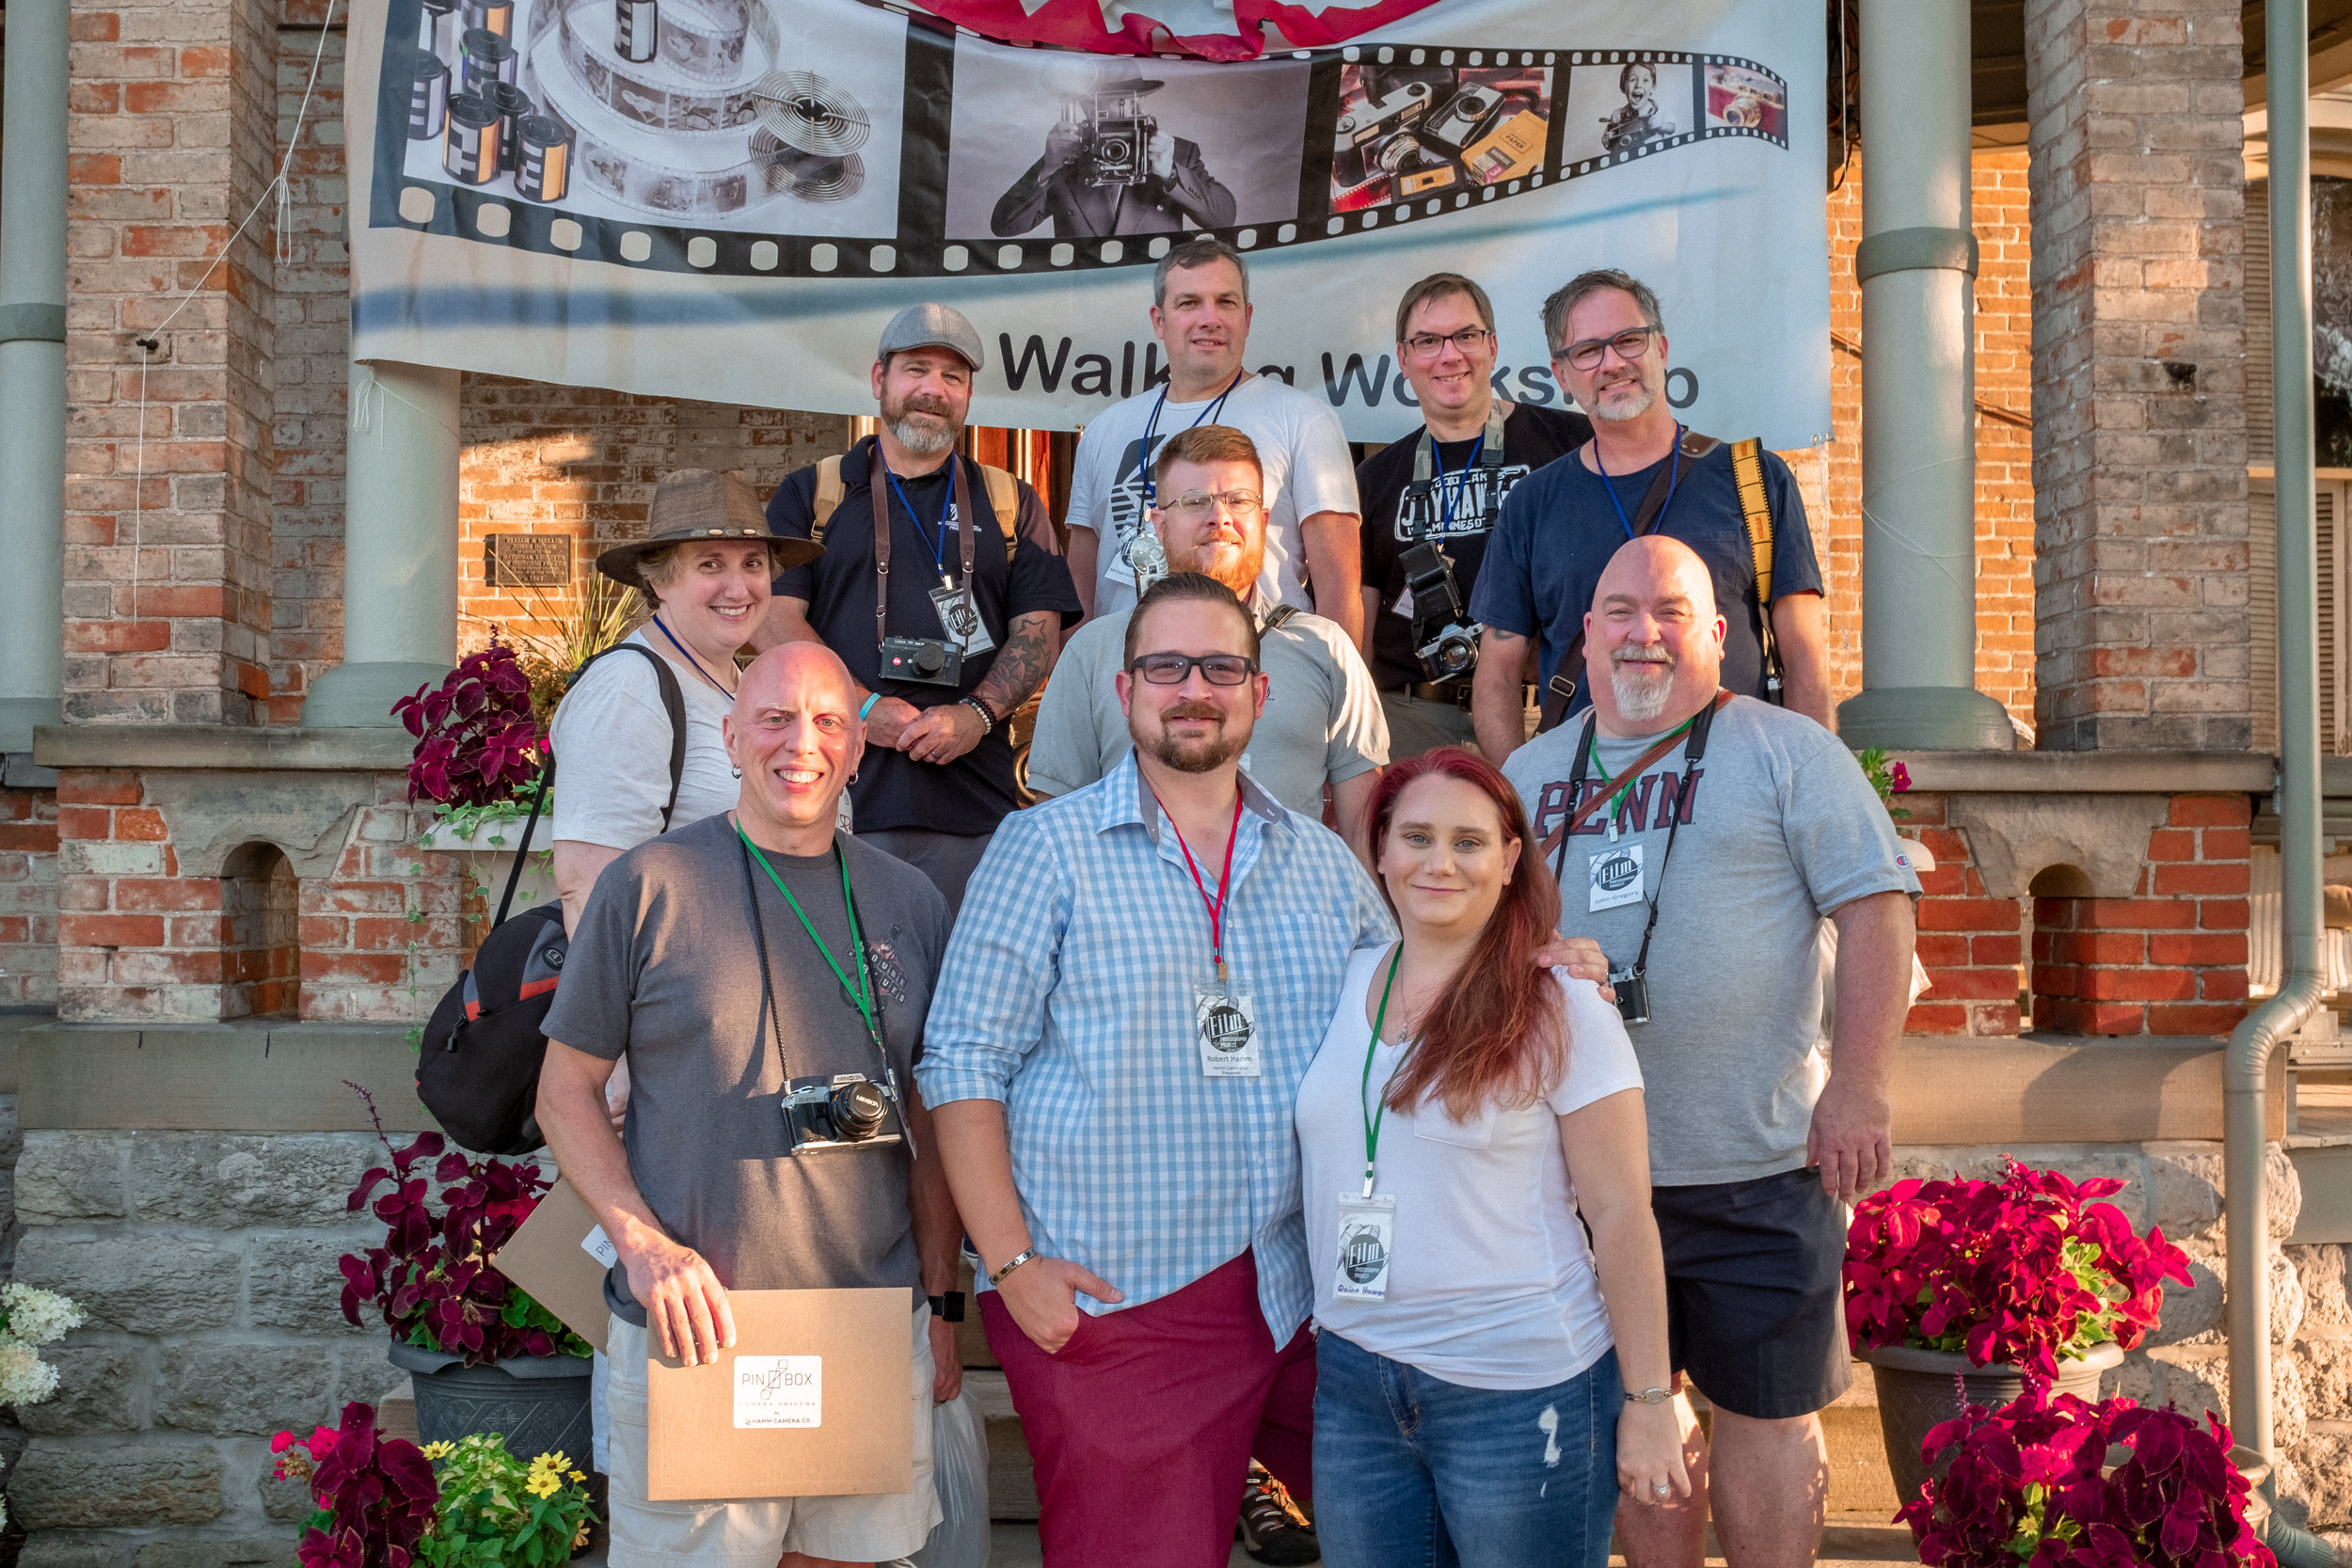 Shawn (back row, on the left) and I (front row, on the left) at the Film Photography Walking Workshop, August 2018. (Photo courtesy of Robert Hamm)